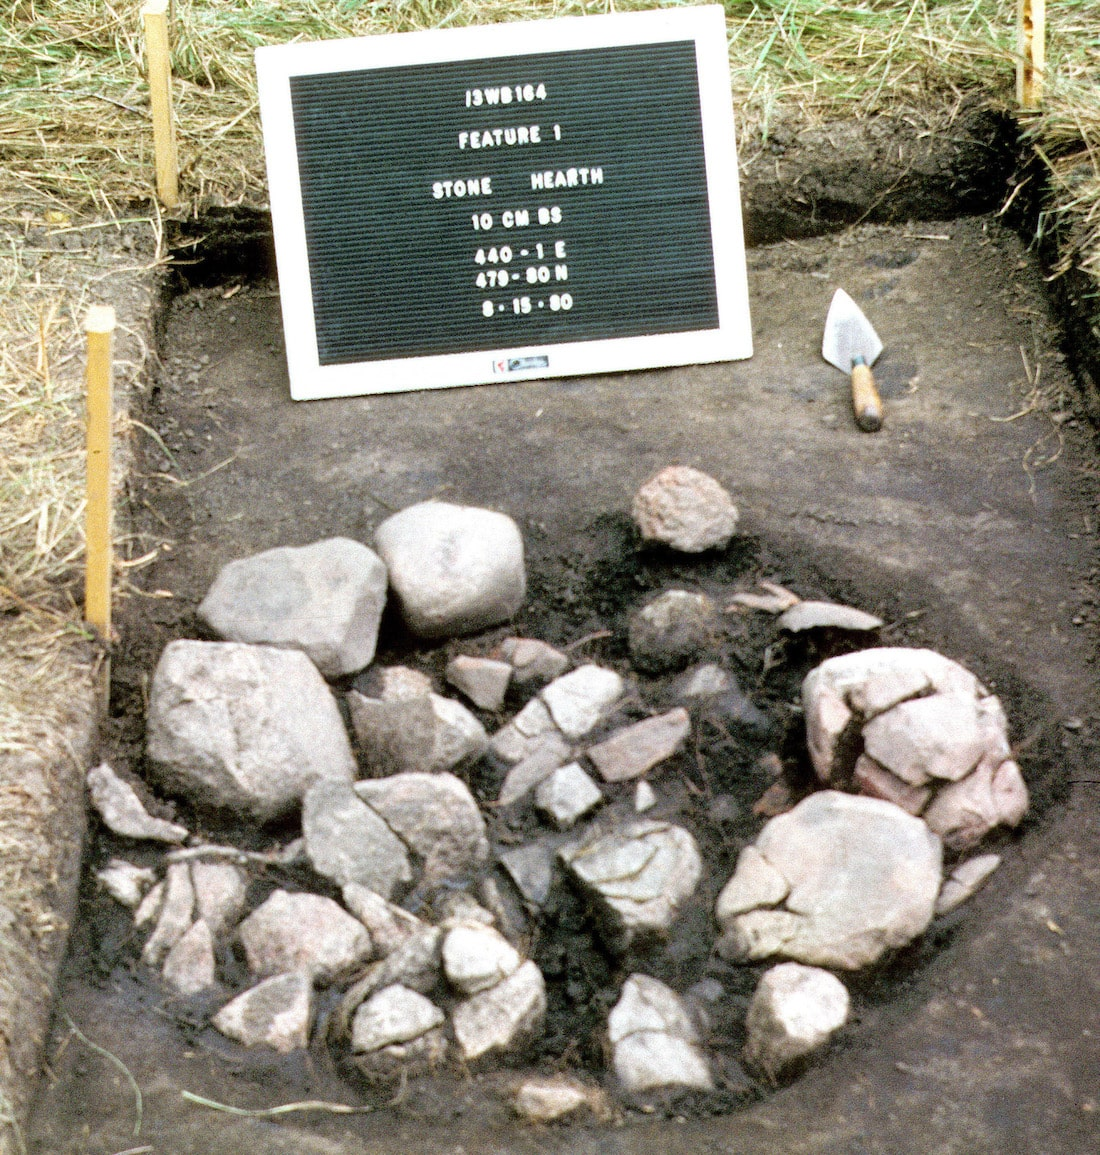 whitish and gray stones piled in a circle in a depressed hole with a sign explaining that they are a former stone cooking pit.